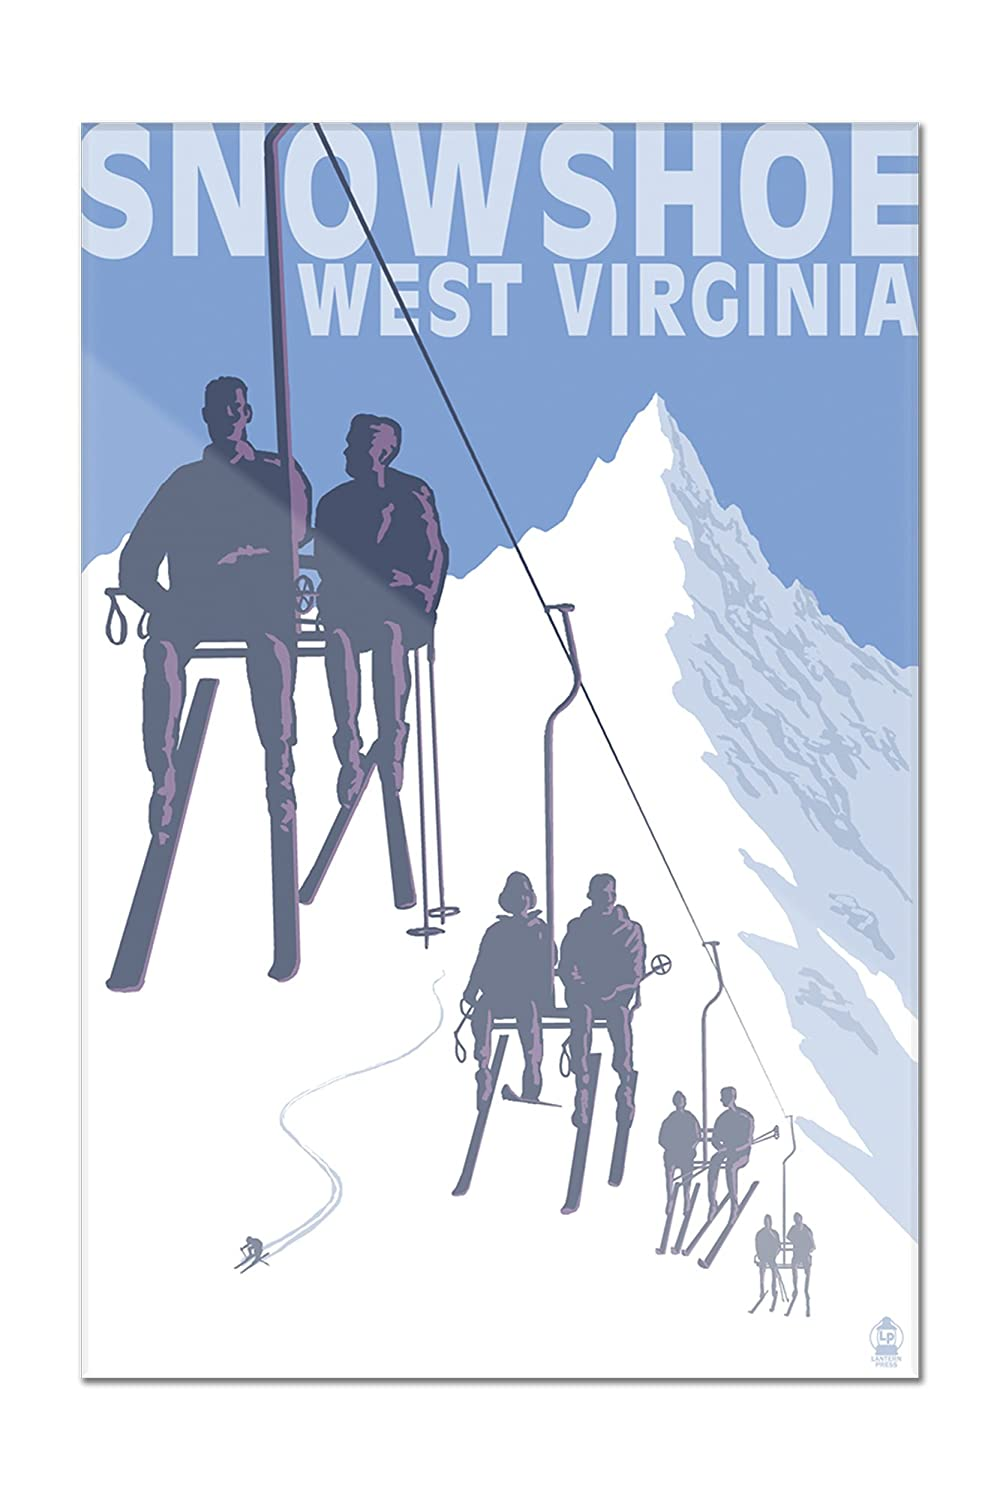 Snowshoe、West Virginia – Skiers onリフト 12 x 18 Acrylic Hanging Wall Decor LANT-3P-AC-WD-36515-12x18 12 x 18 Acrylic Hanging Wall Decor  B01N8QSMAW